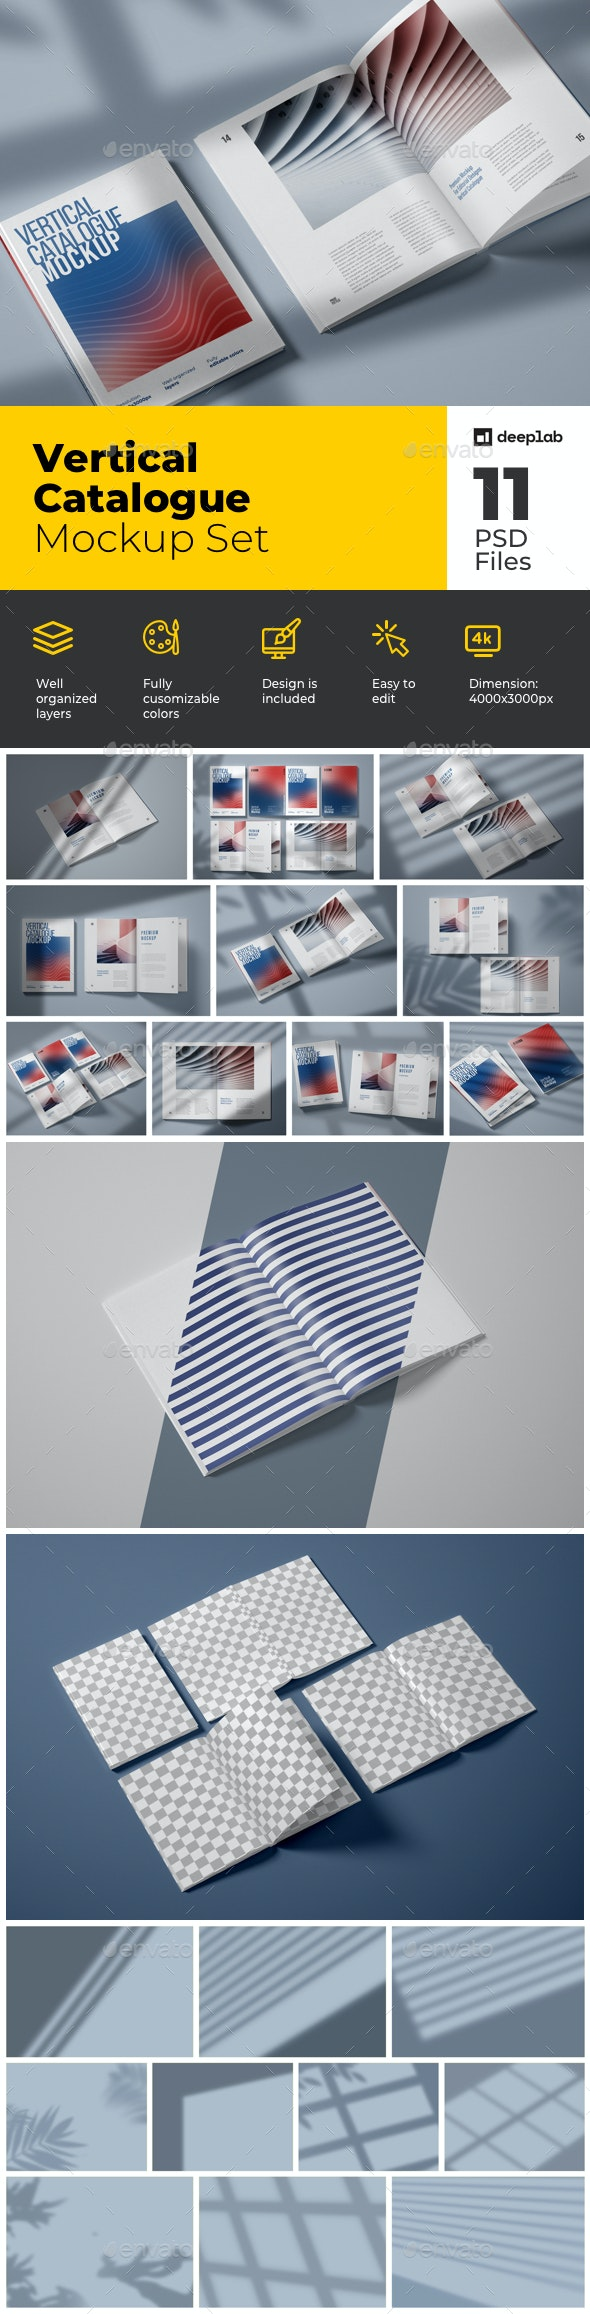 Vertical Catalogue, Magazine Mockup Set - Product Mock-Ups Graphics